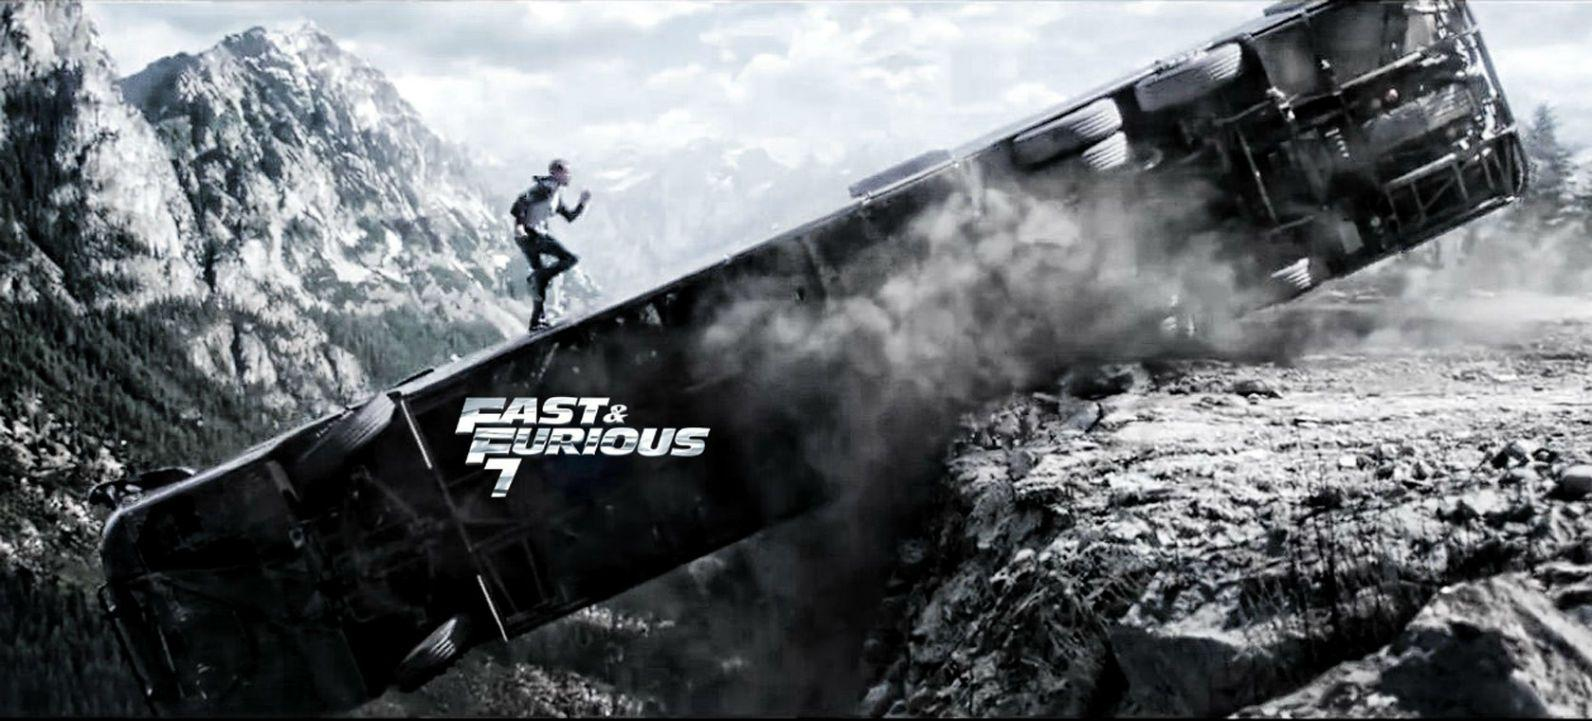 Furious 7' Review: Paul Walker's Last Hurrah Is One Heck of a Ride